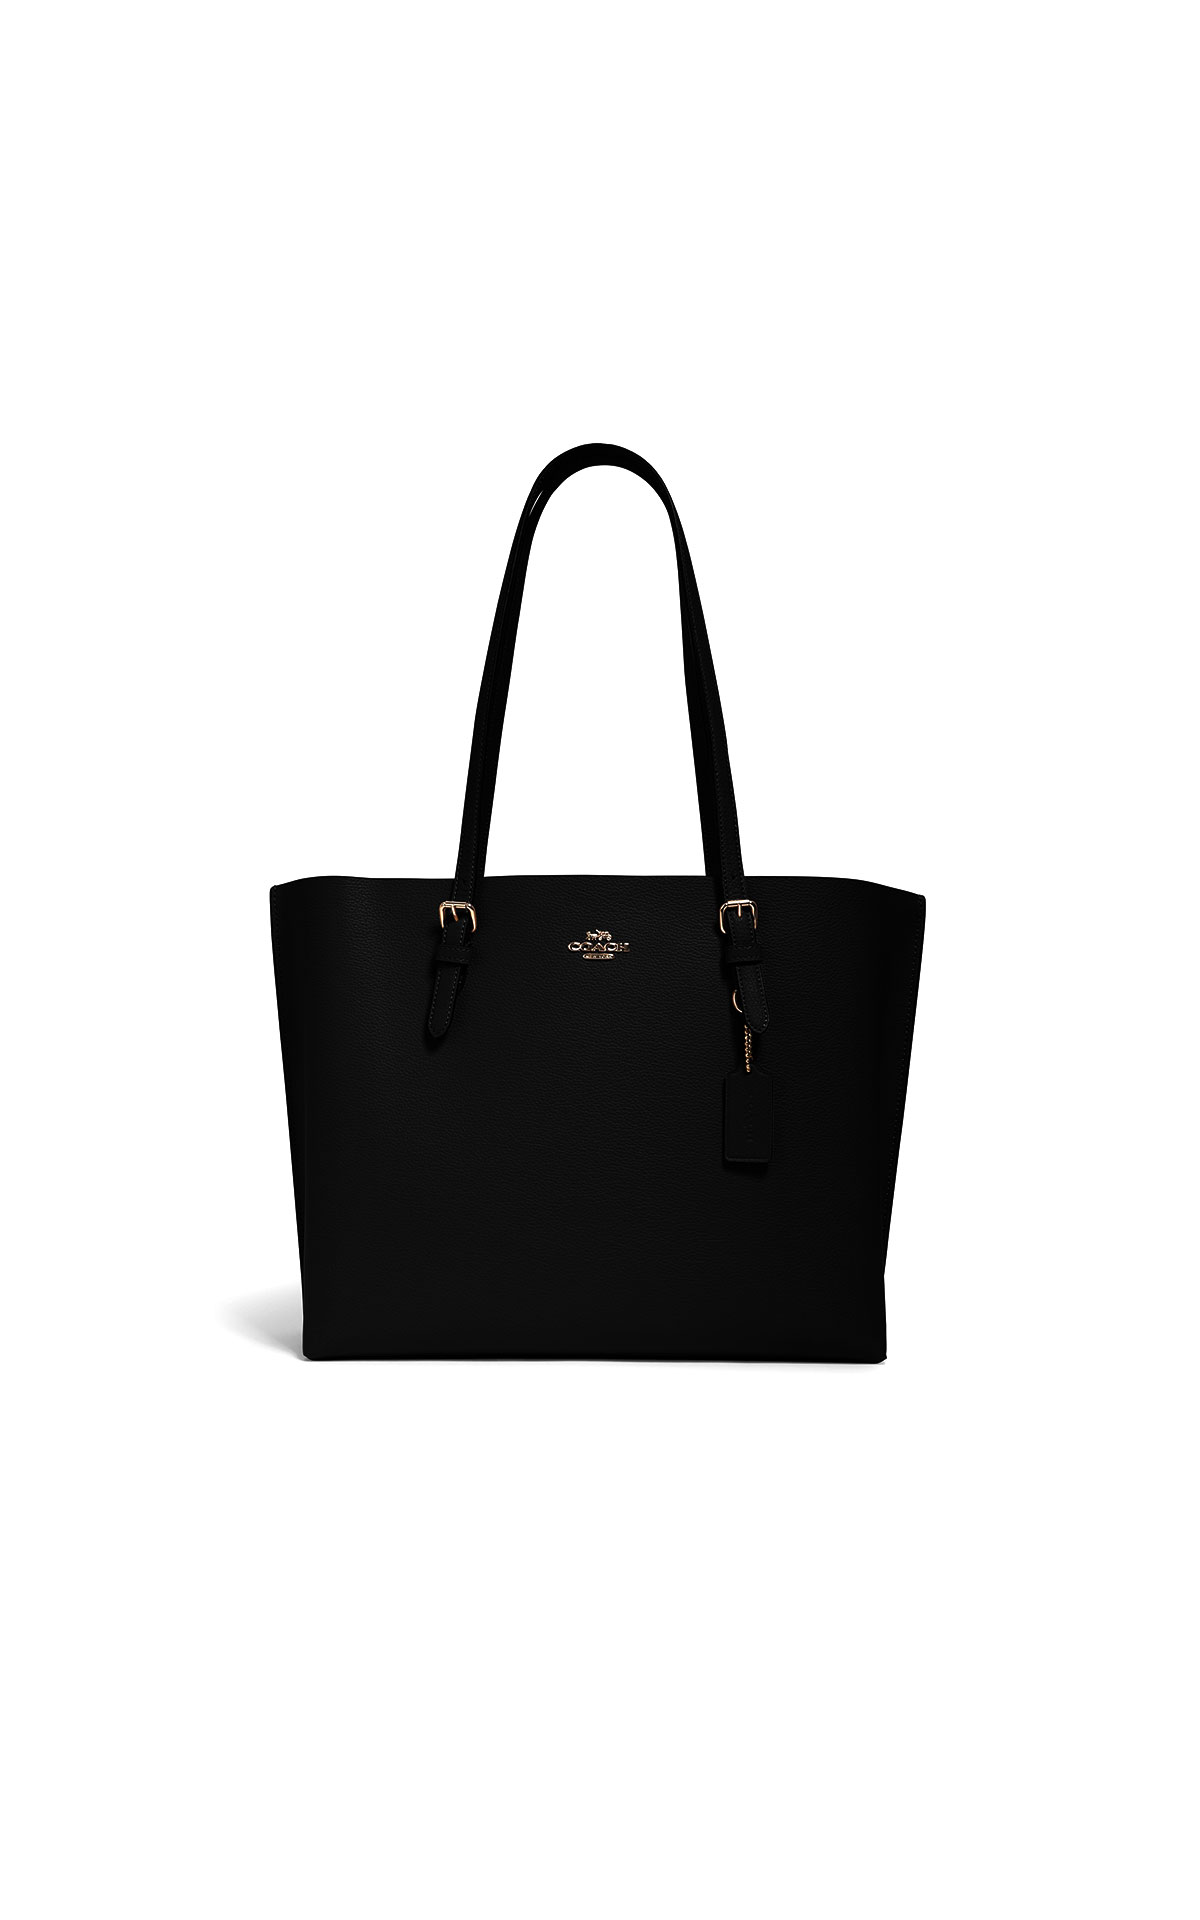 Coach mollie tote at The Bicester Village Shopping Collection